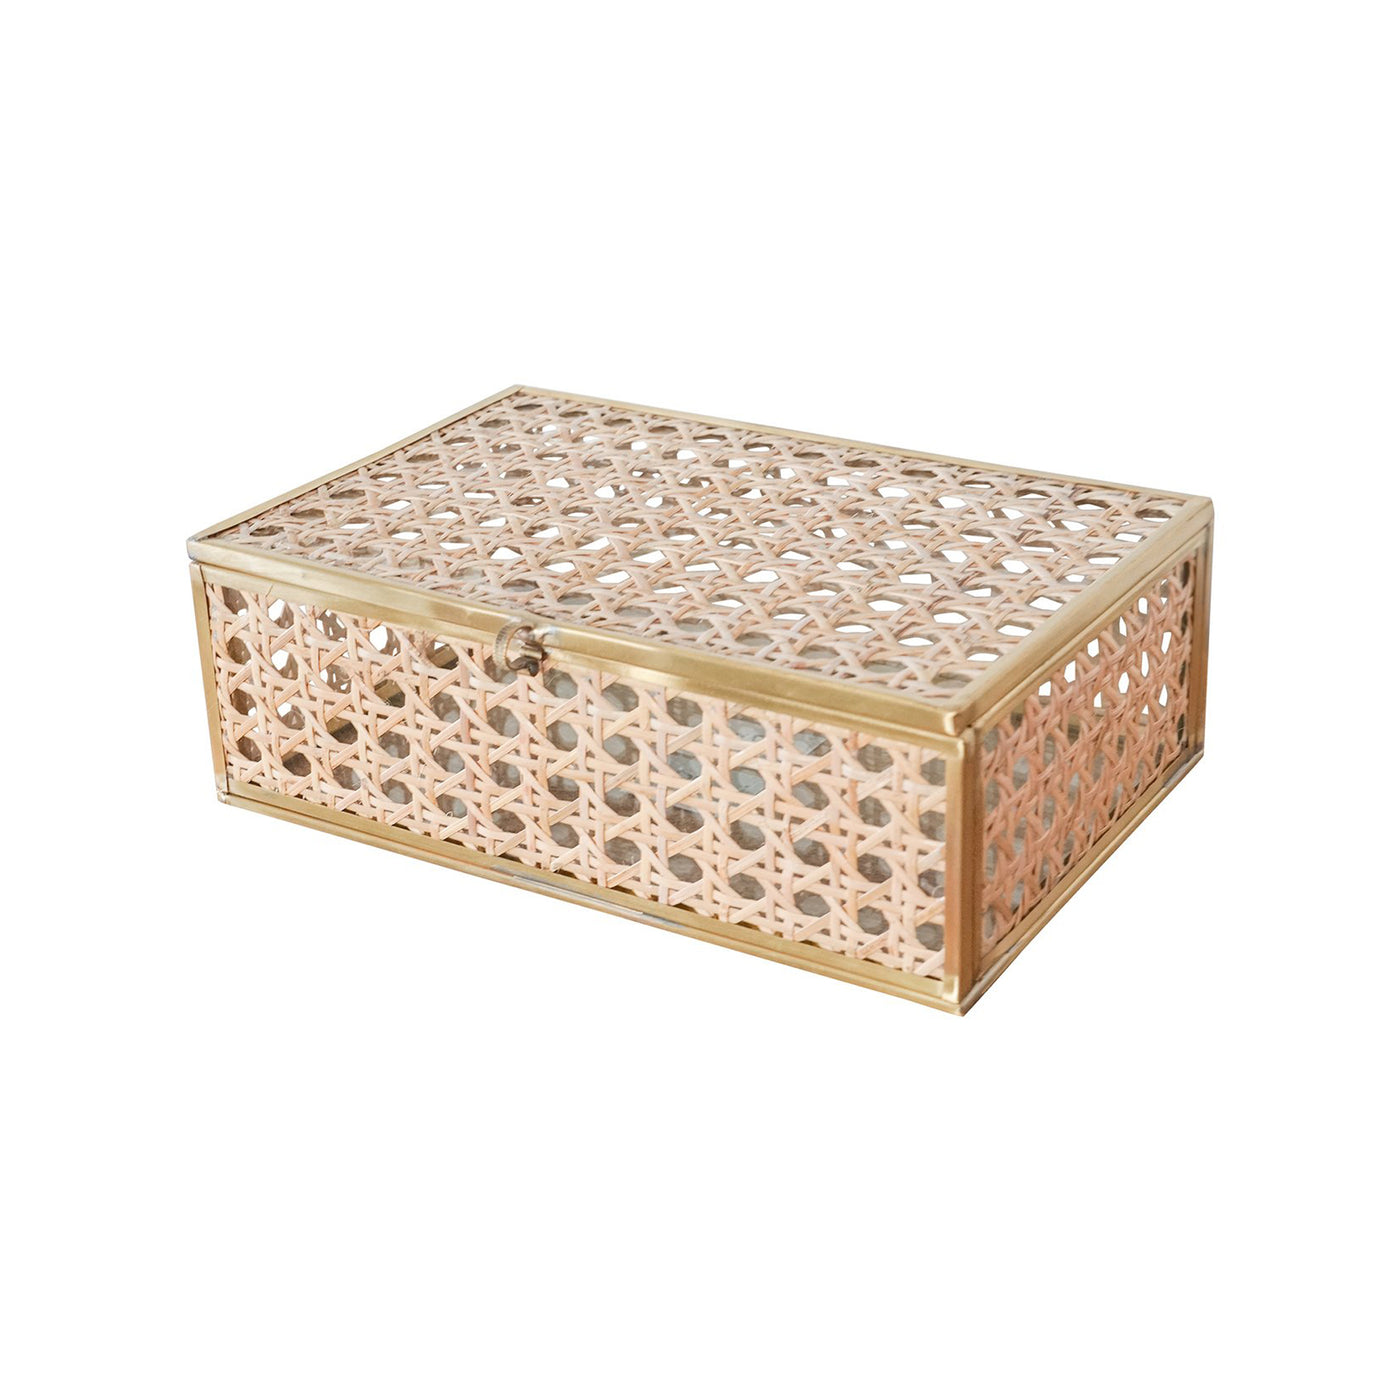 Natural Cane Wicker Box - Medium